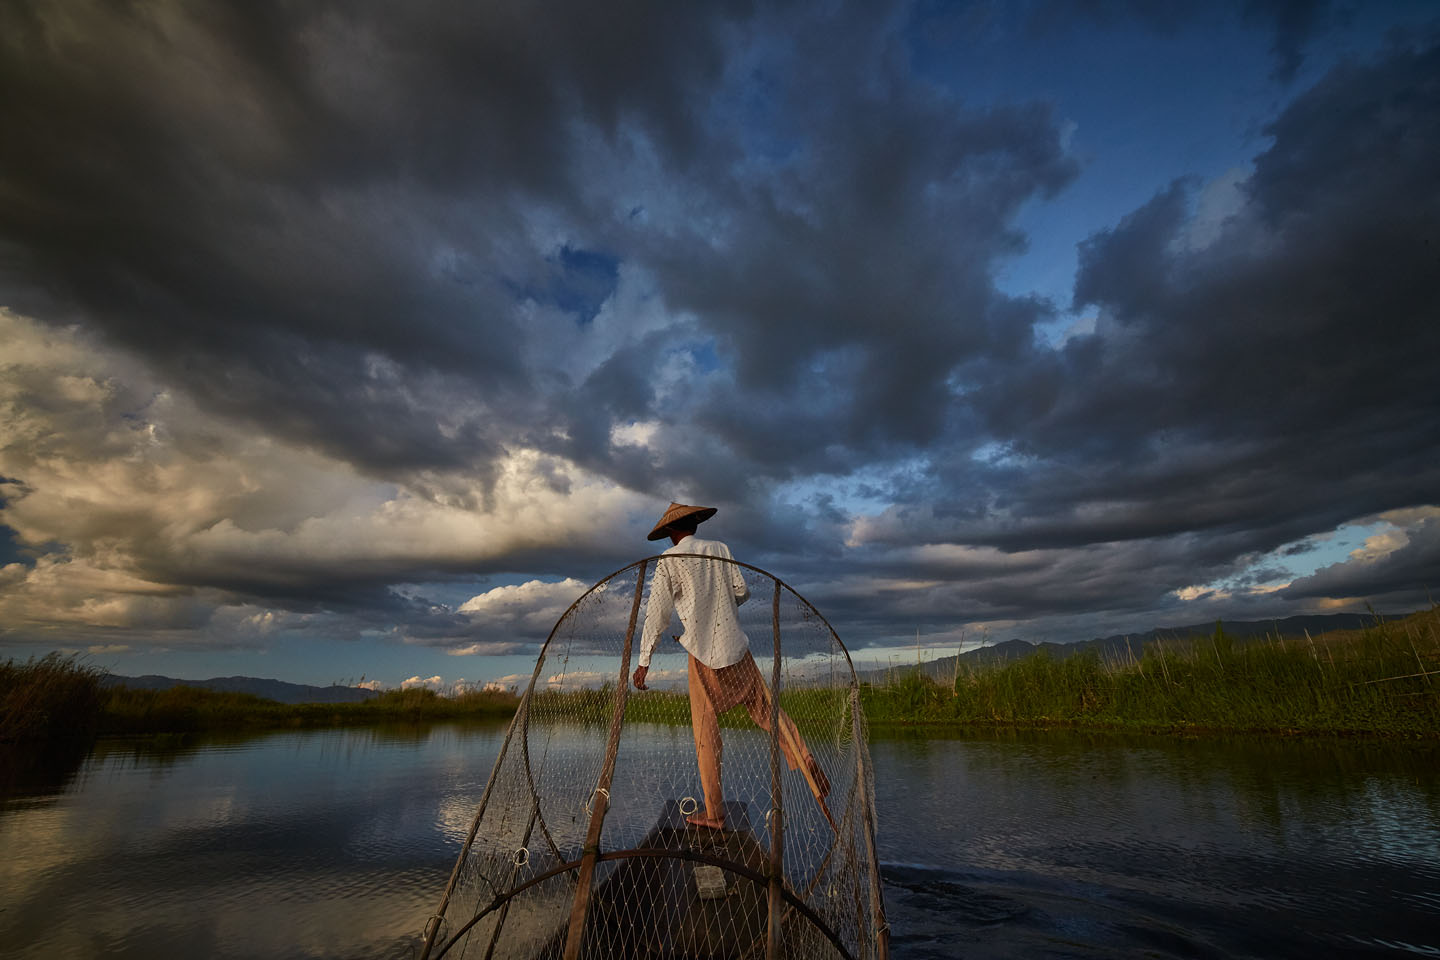 Threatening clouds over Inle lake